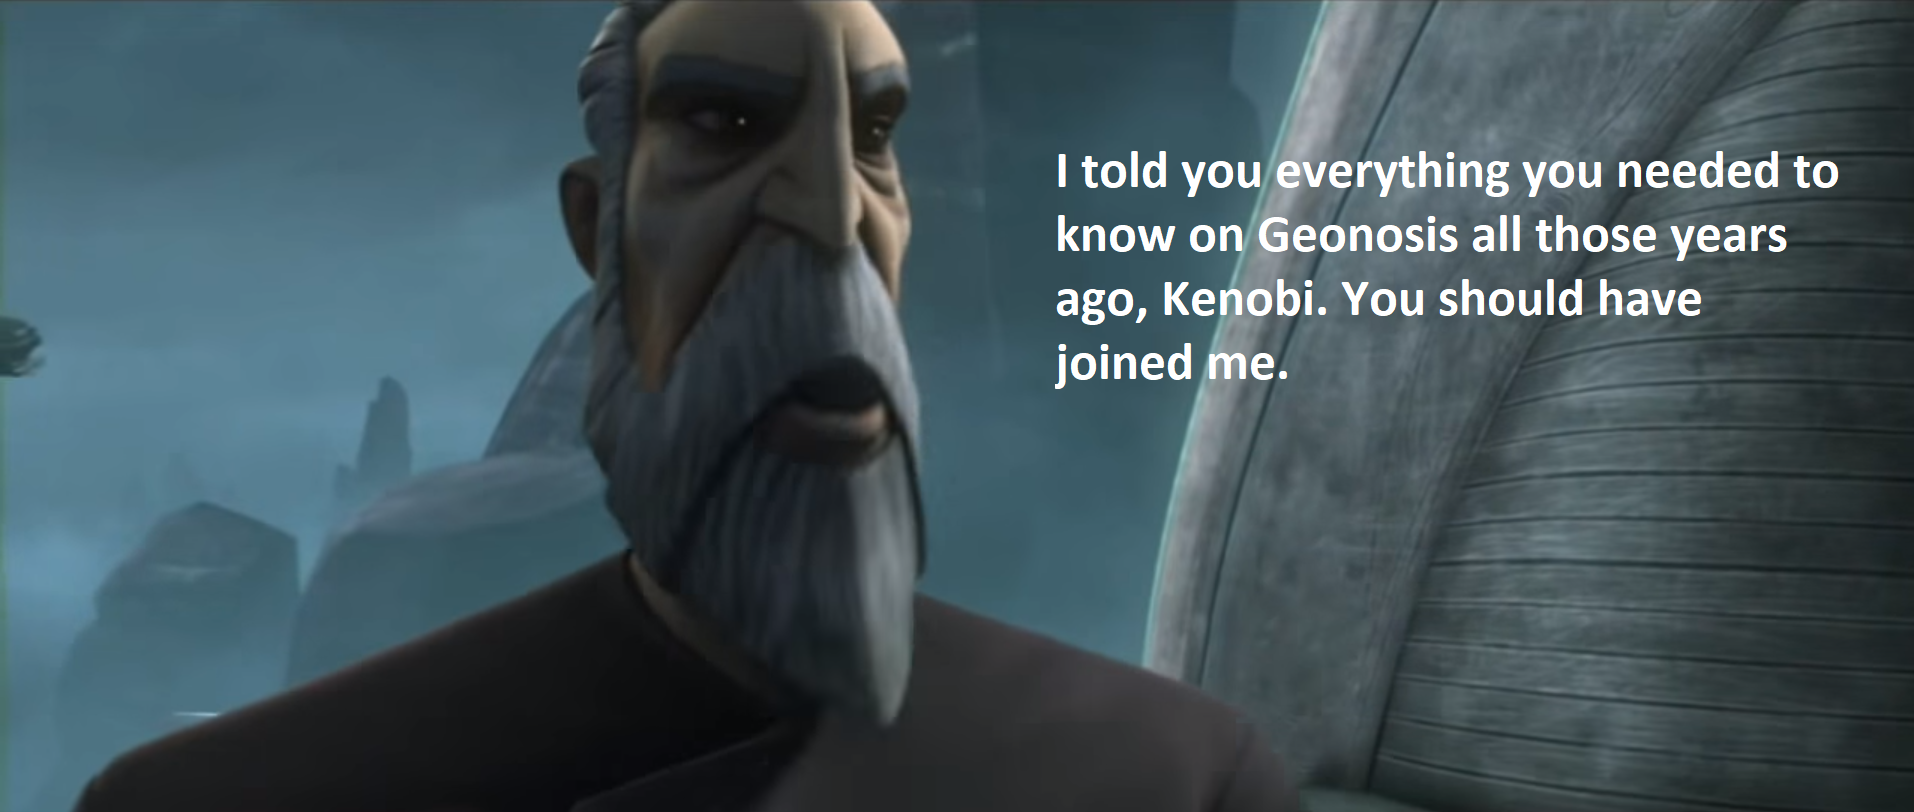 Focused Feedback Anakin Skywalker And Count Dooku Voice